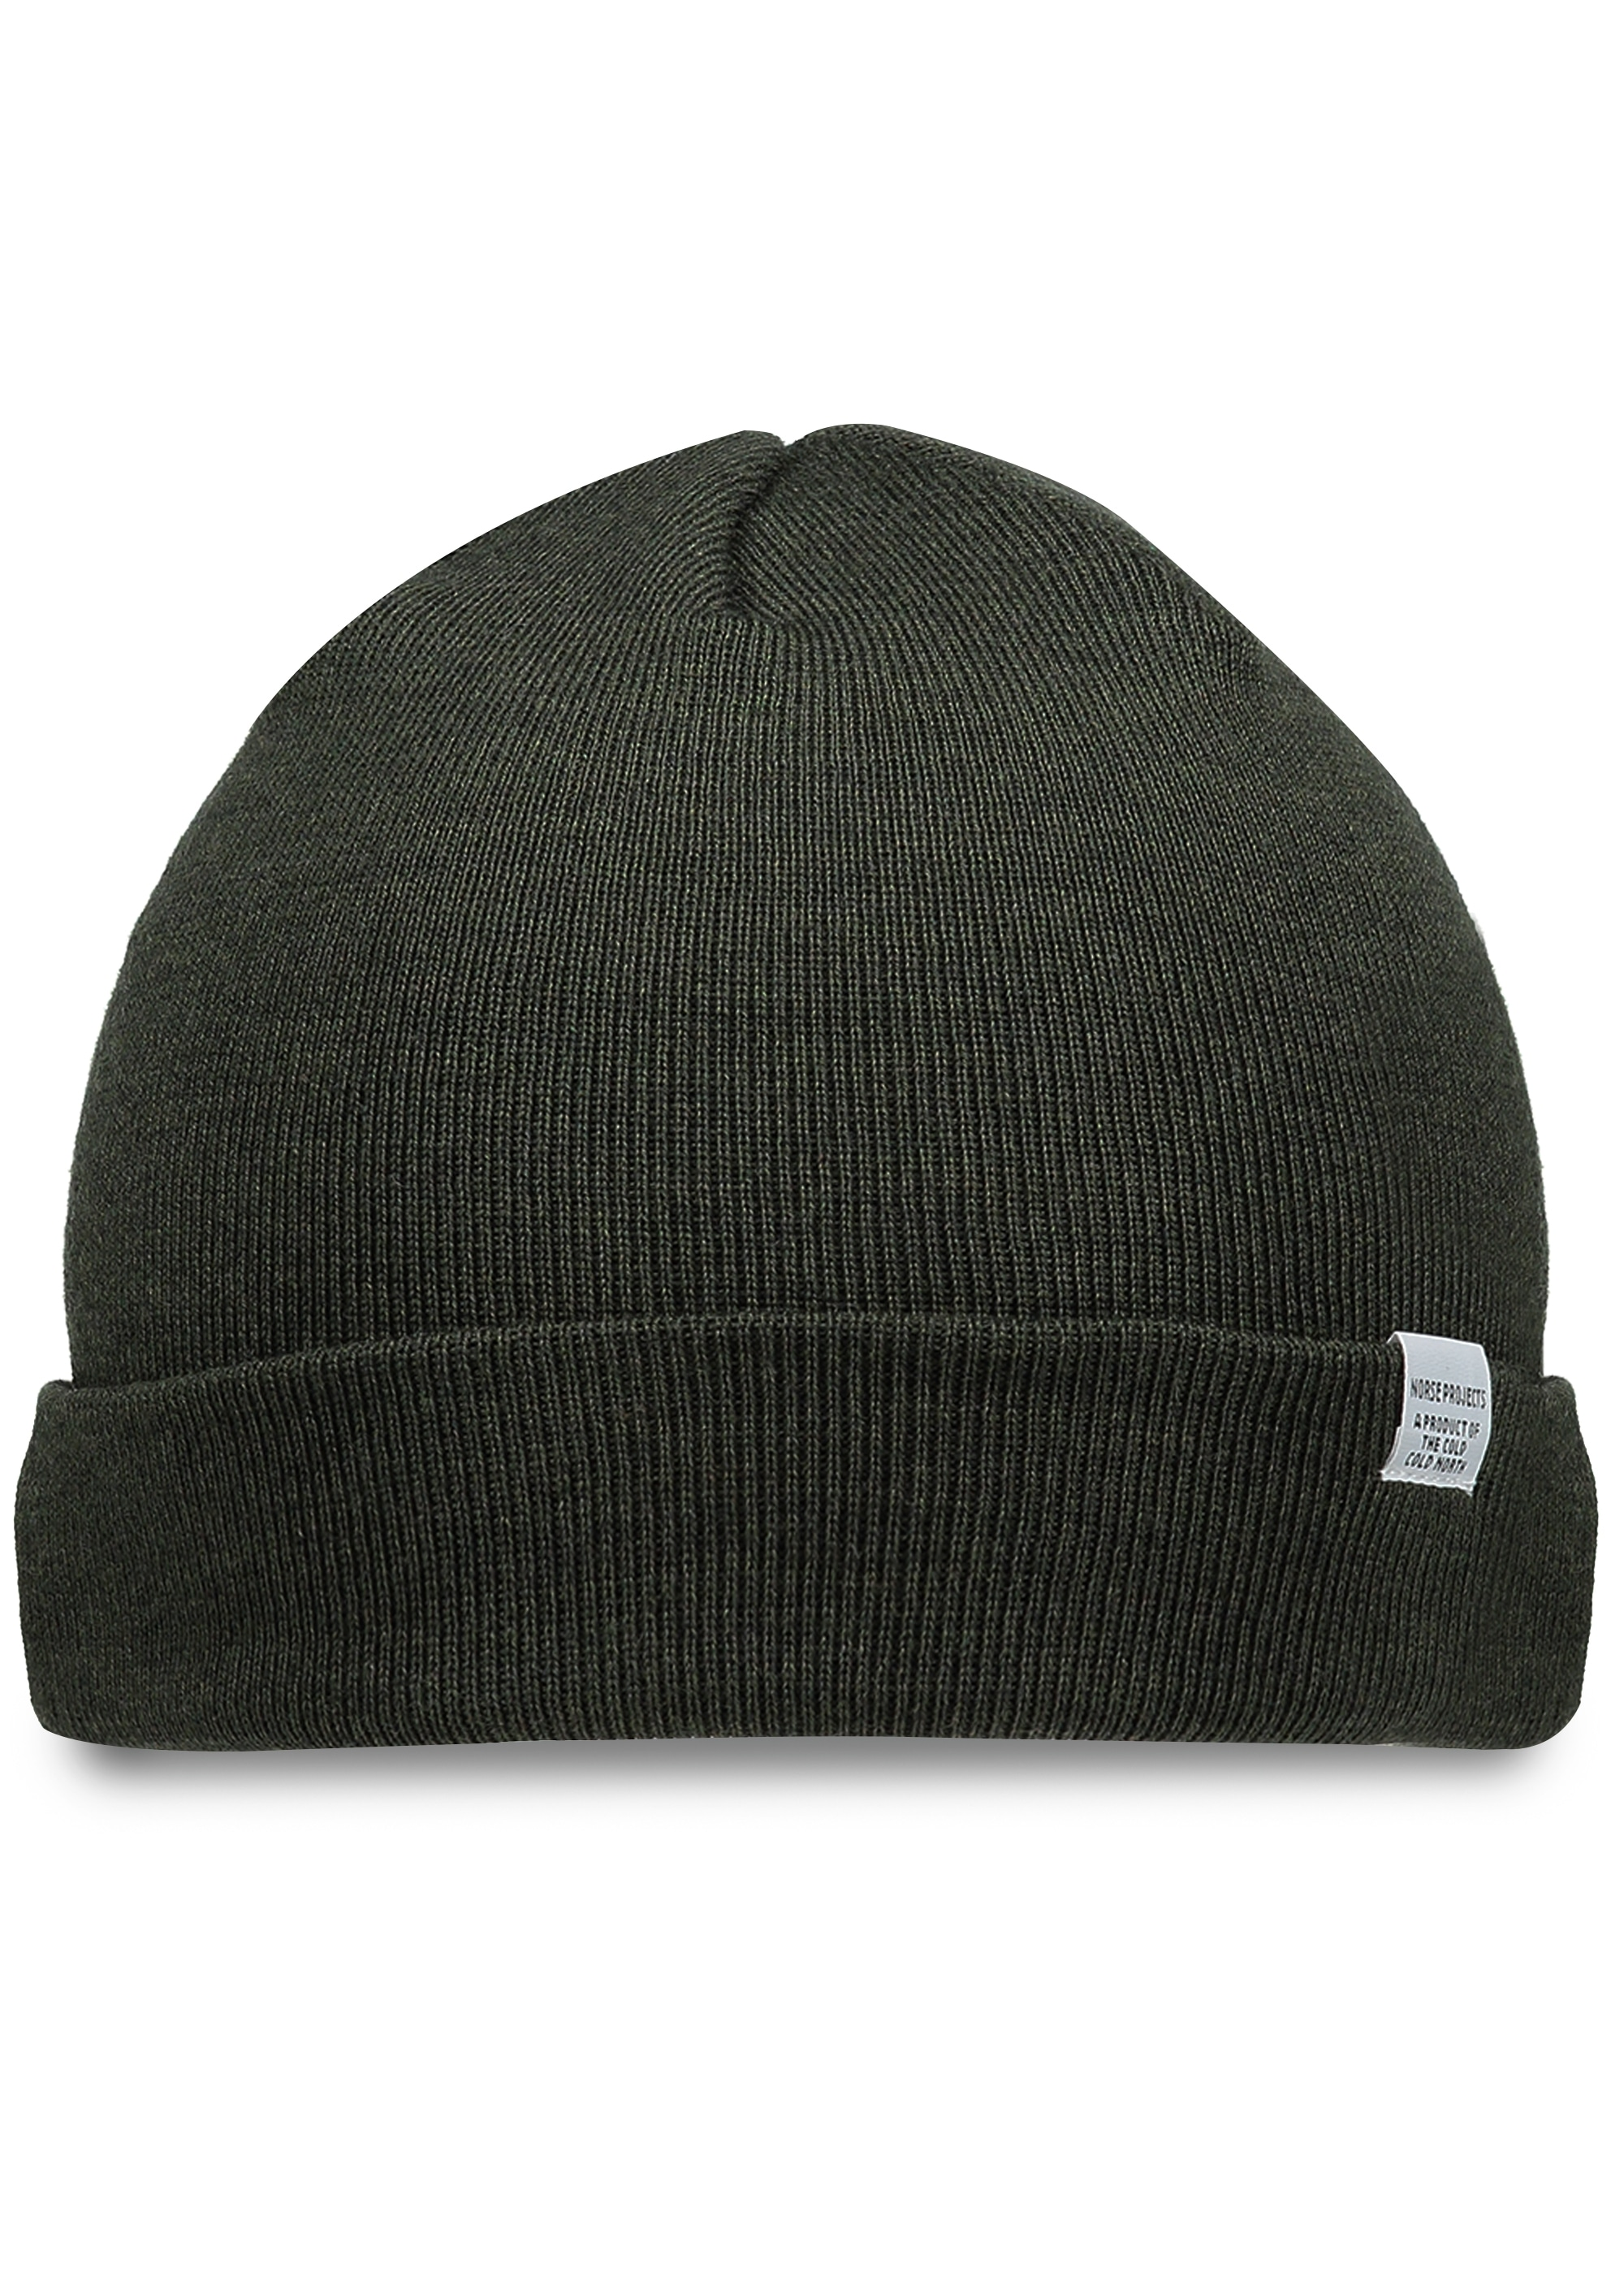 2b27ccd6c53 Norse Projects Norse Top Beanie - Moss - Triads Mens from Triads UK